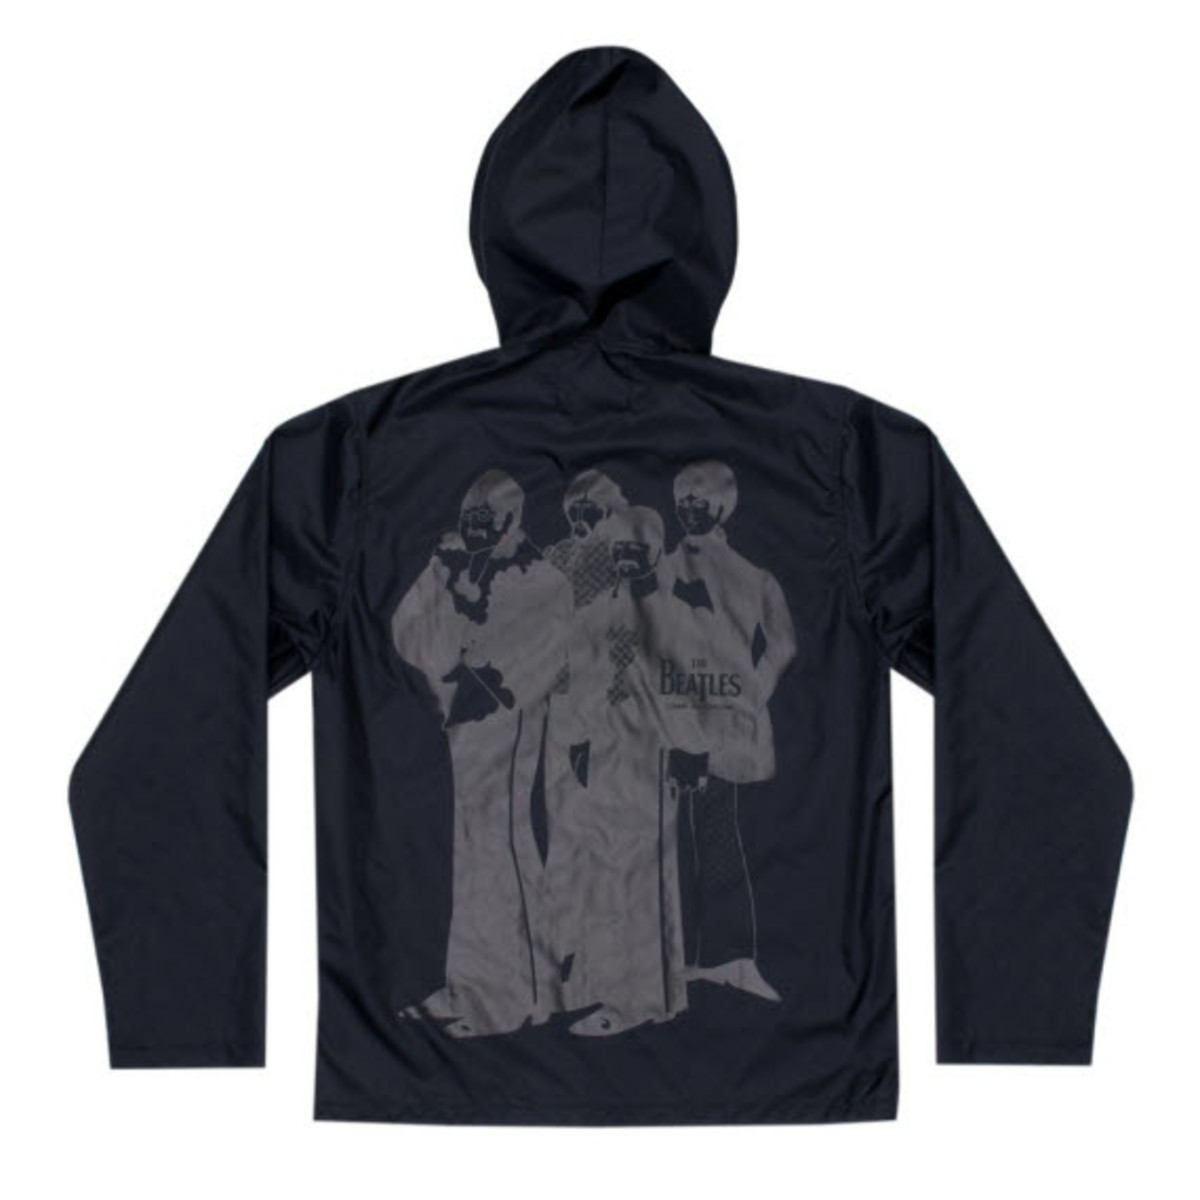 comme-des-garcons-x-the-beatles-the-beatles-springsummer-2013-capsule-collection-2